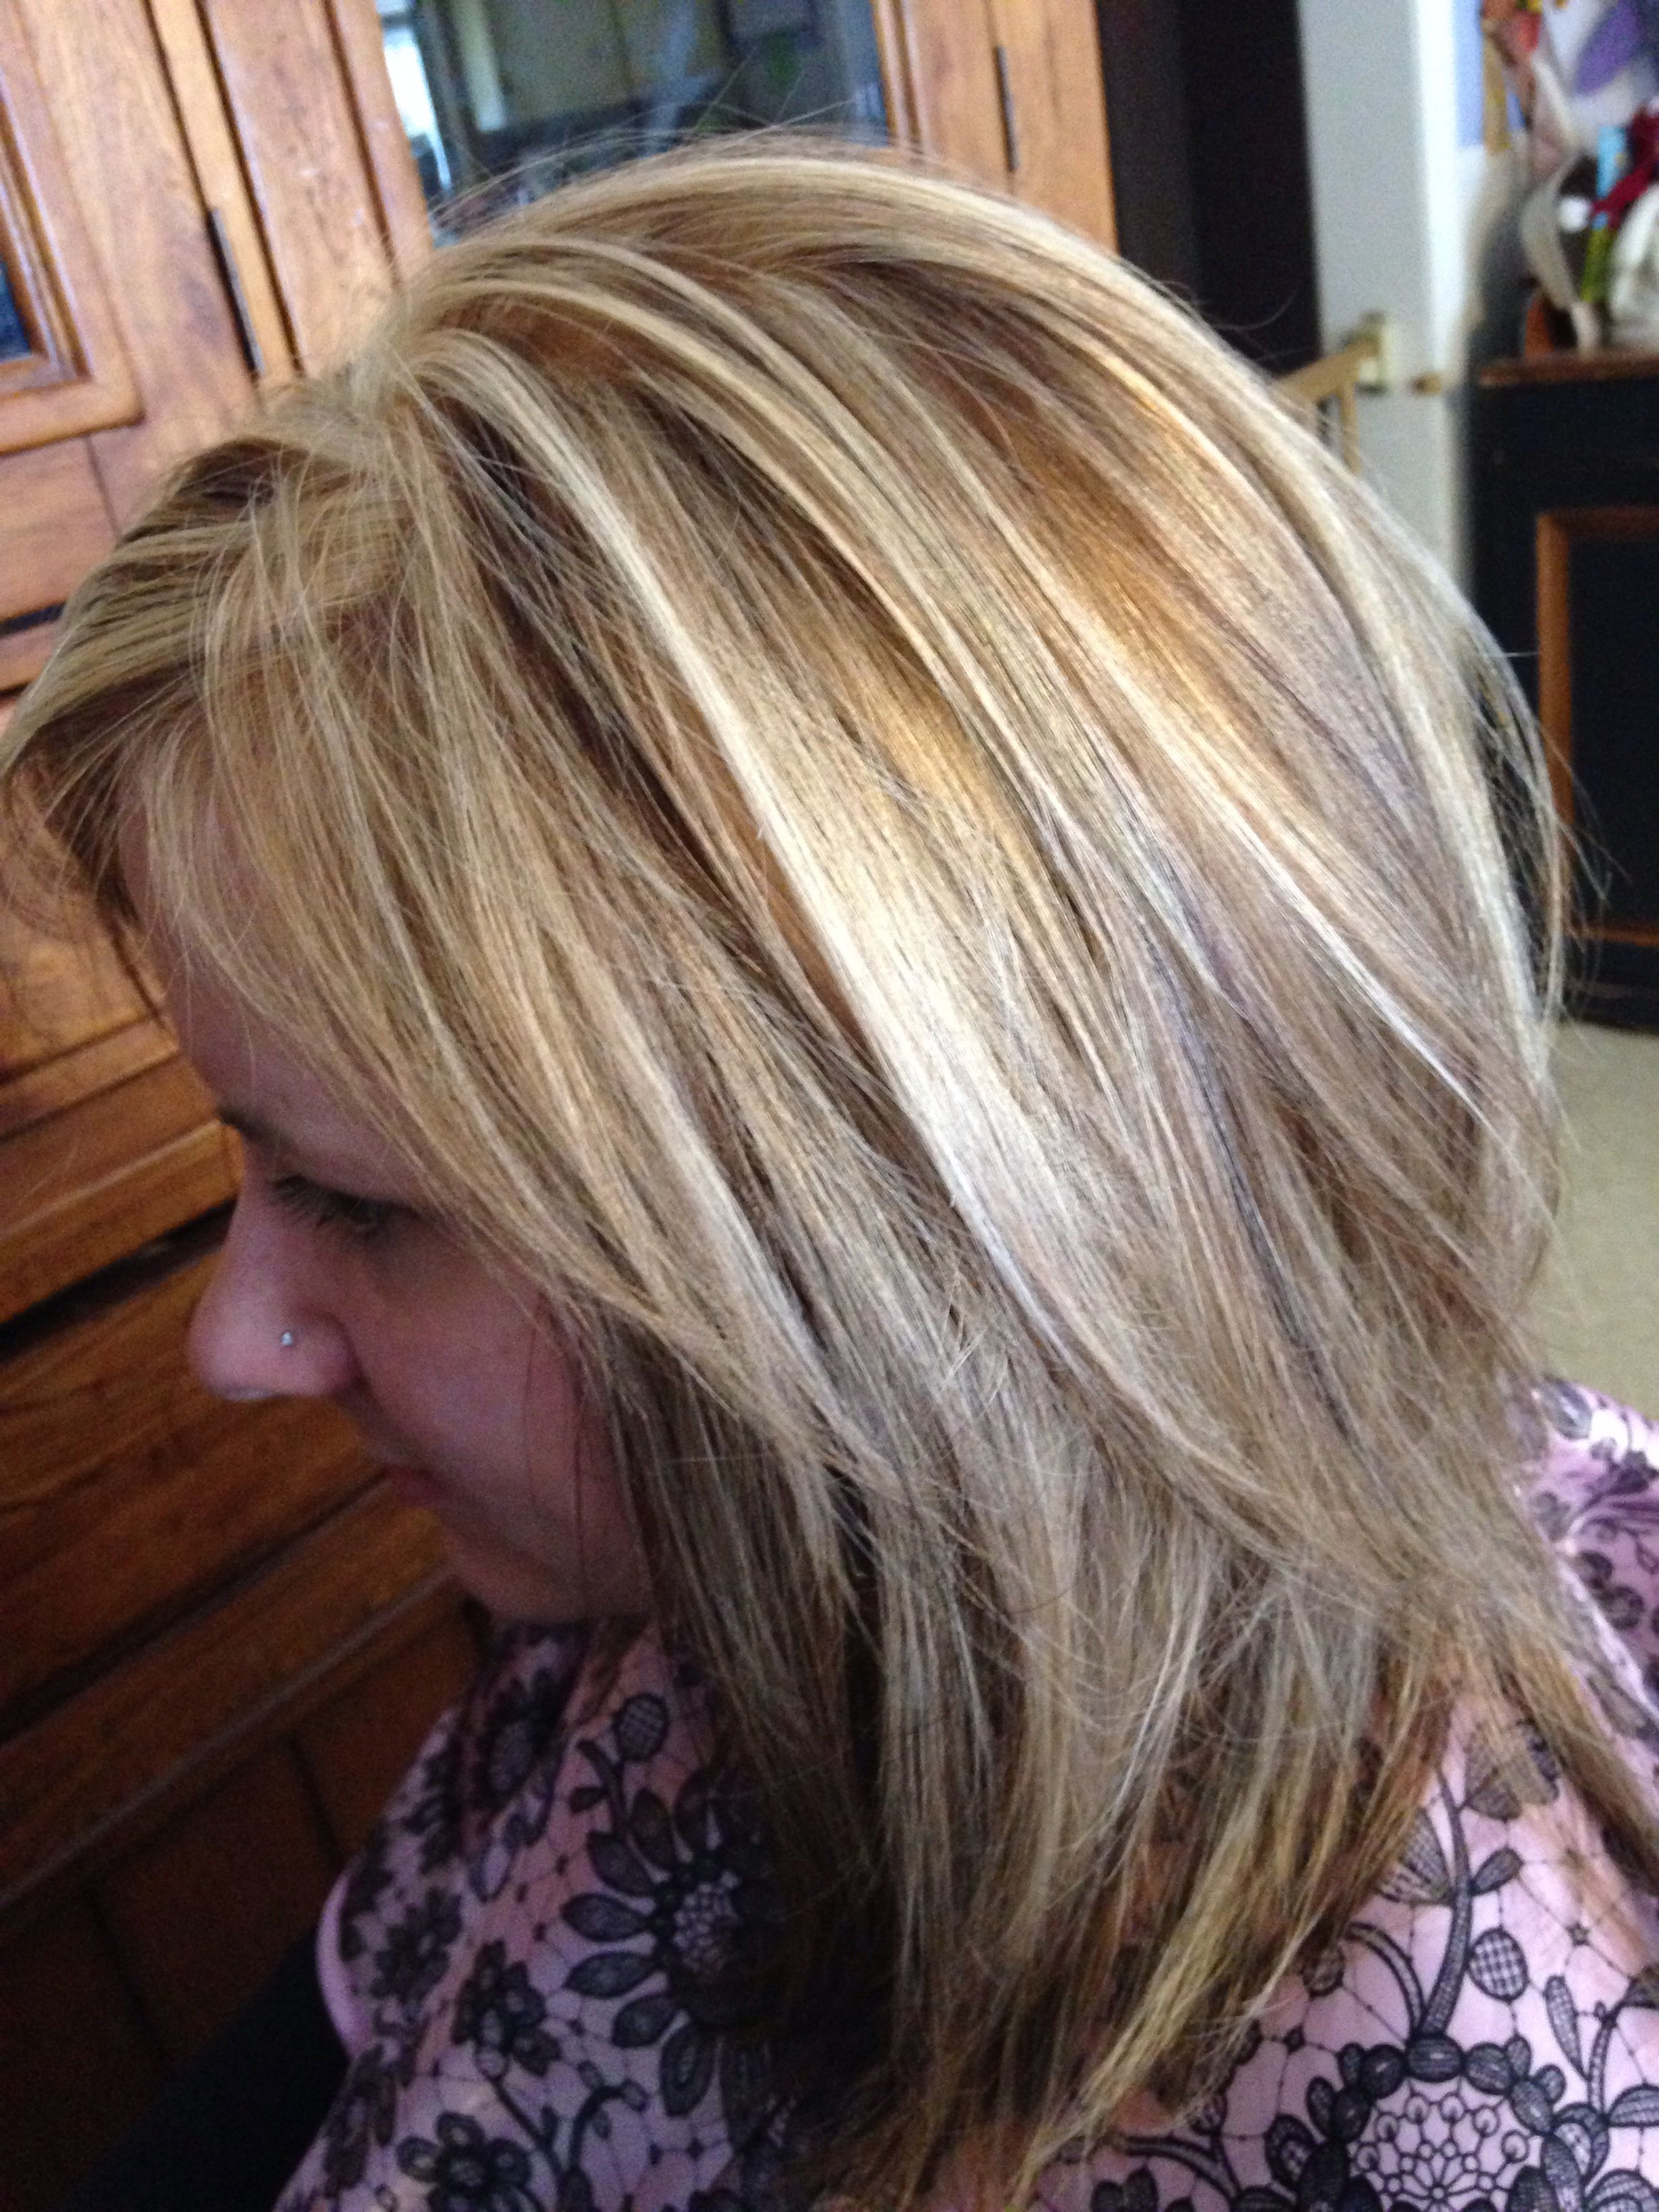 3 color blonde and brown hair foil | sara's hair creations